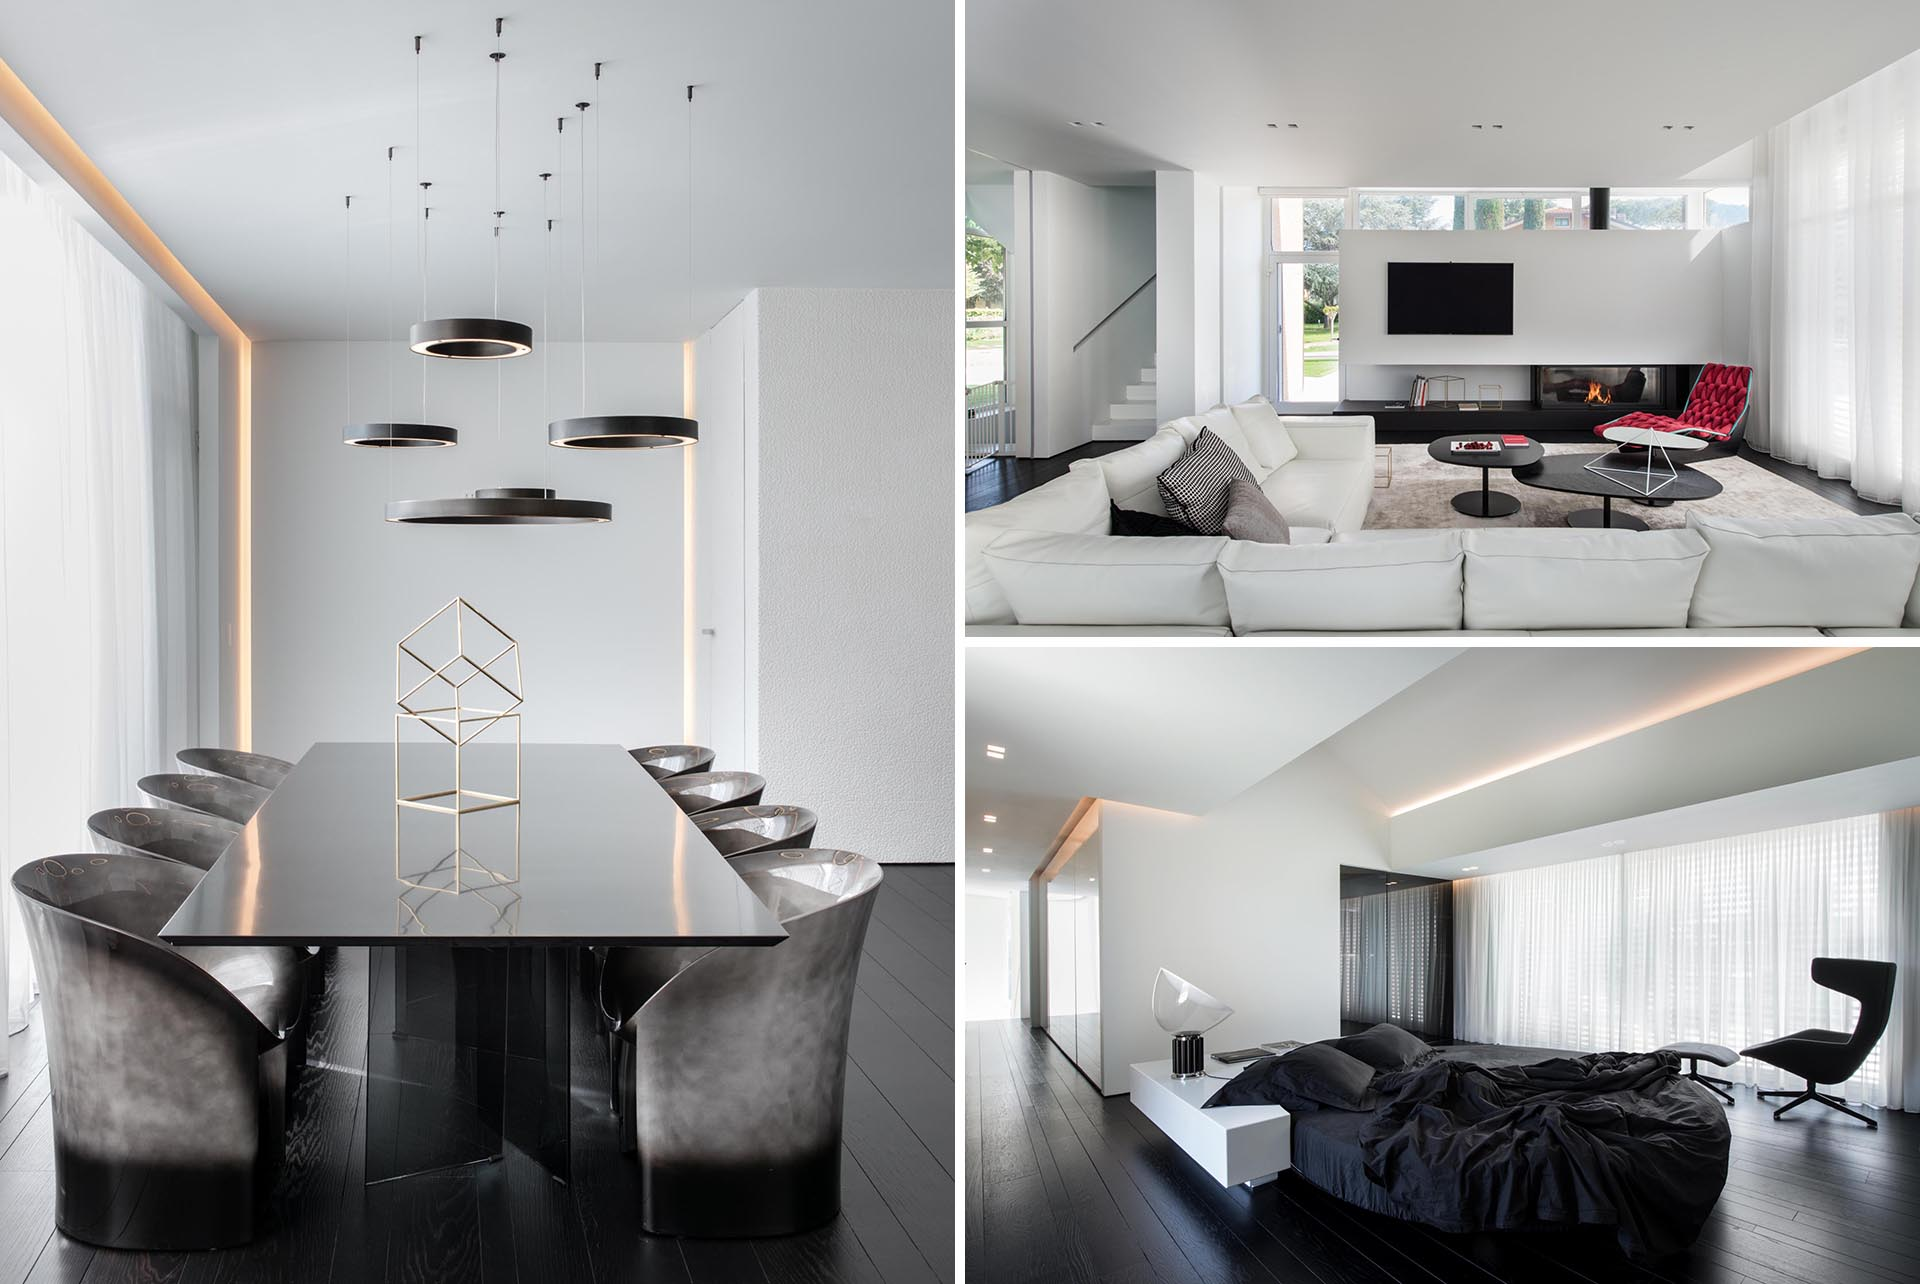 A modern home with a black and white color palette.